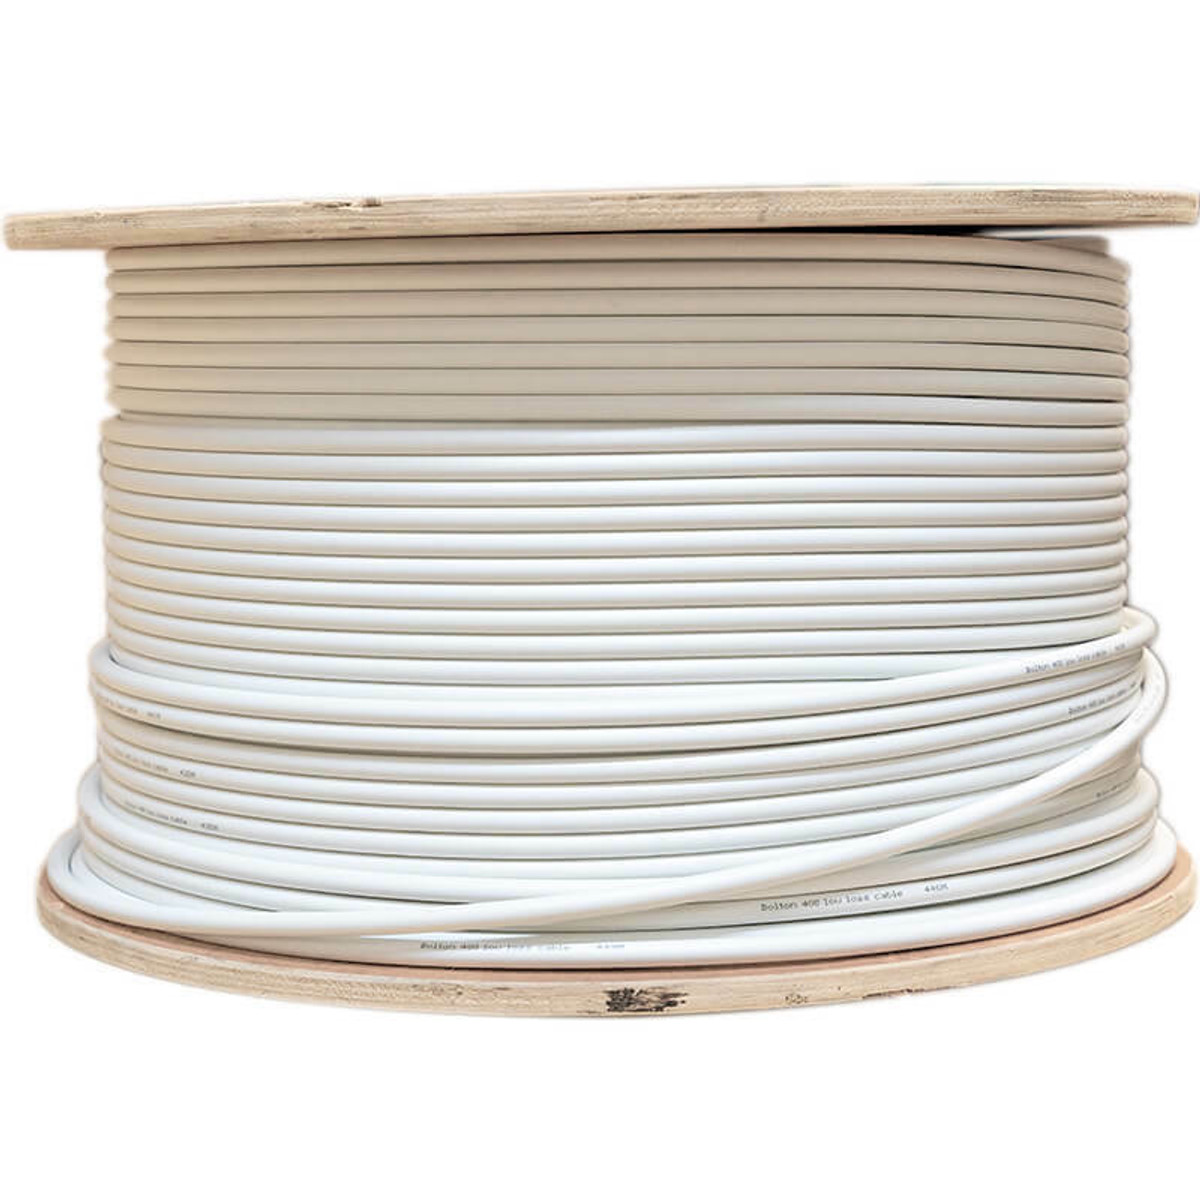 Bolton Tech Bolton Technical Bolton400 White Ultra Low-Loss Cable Spool or 500ft